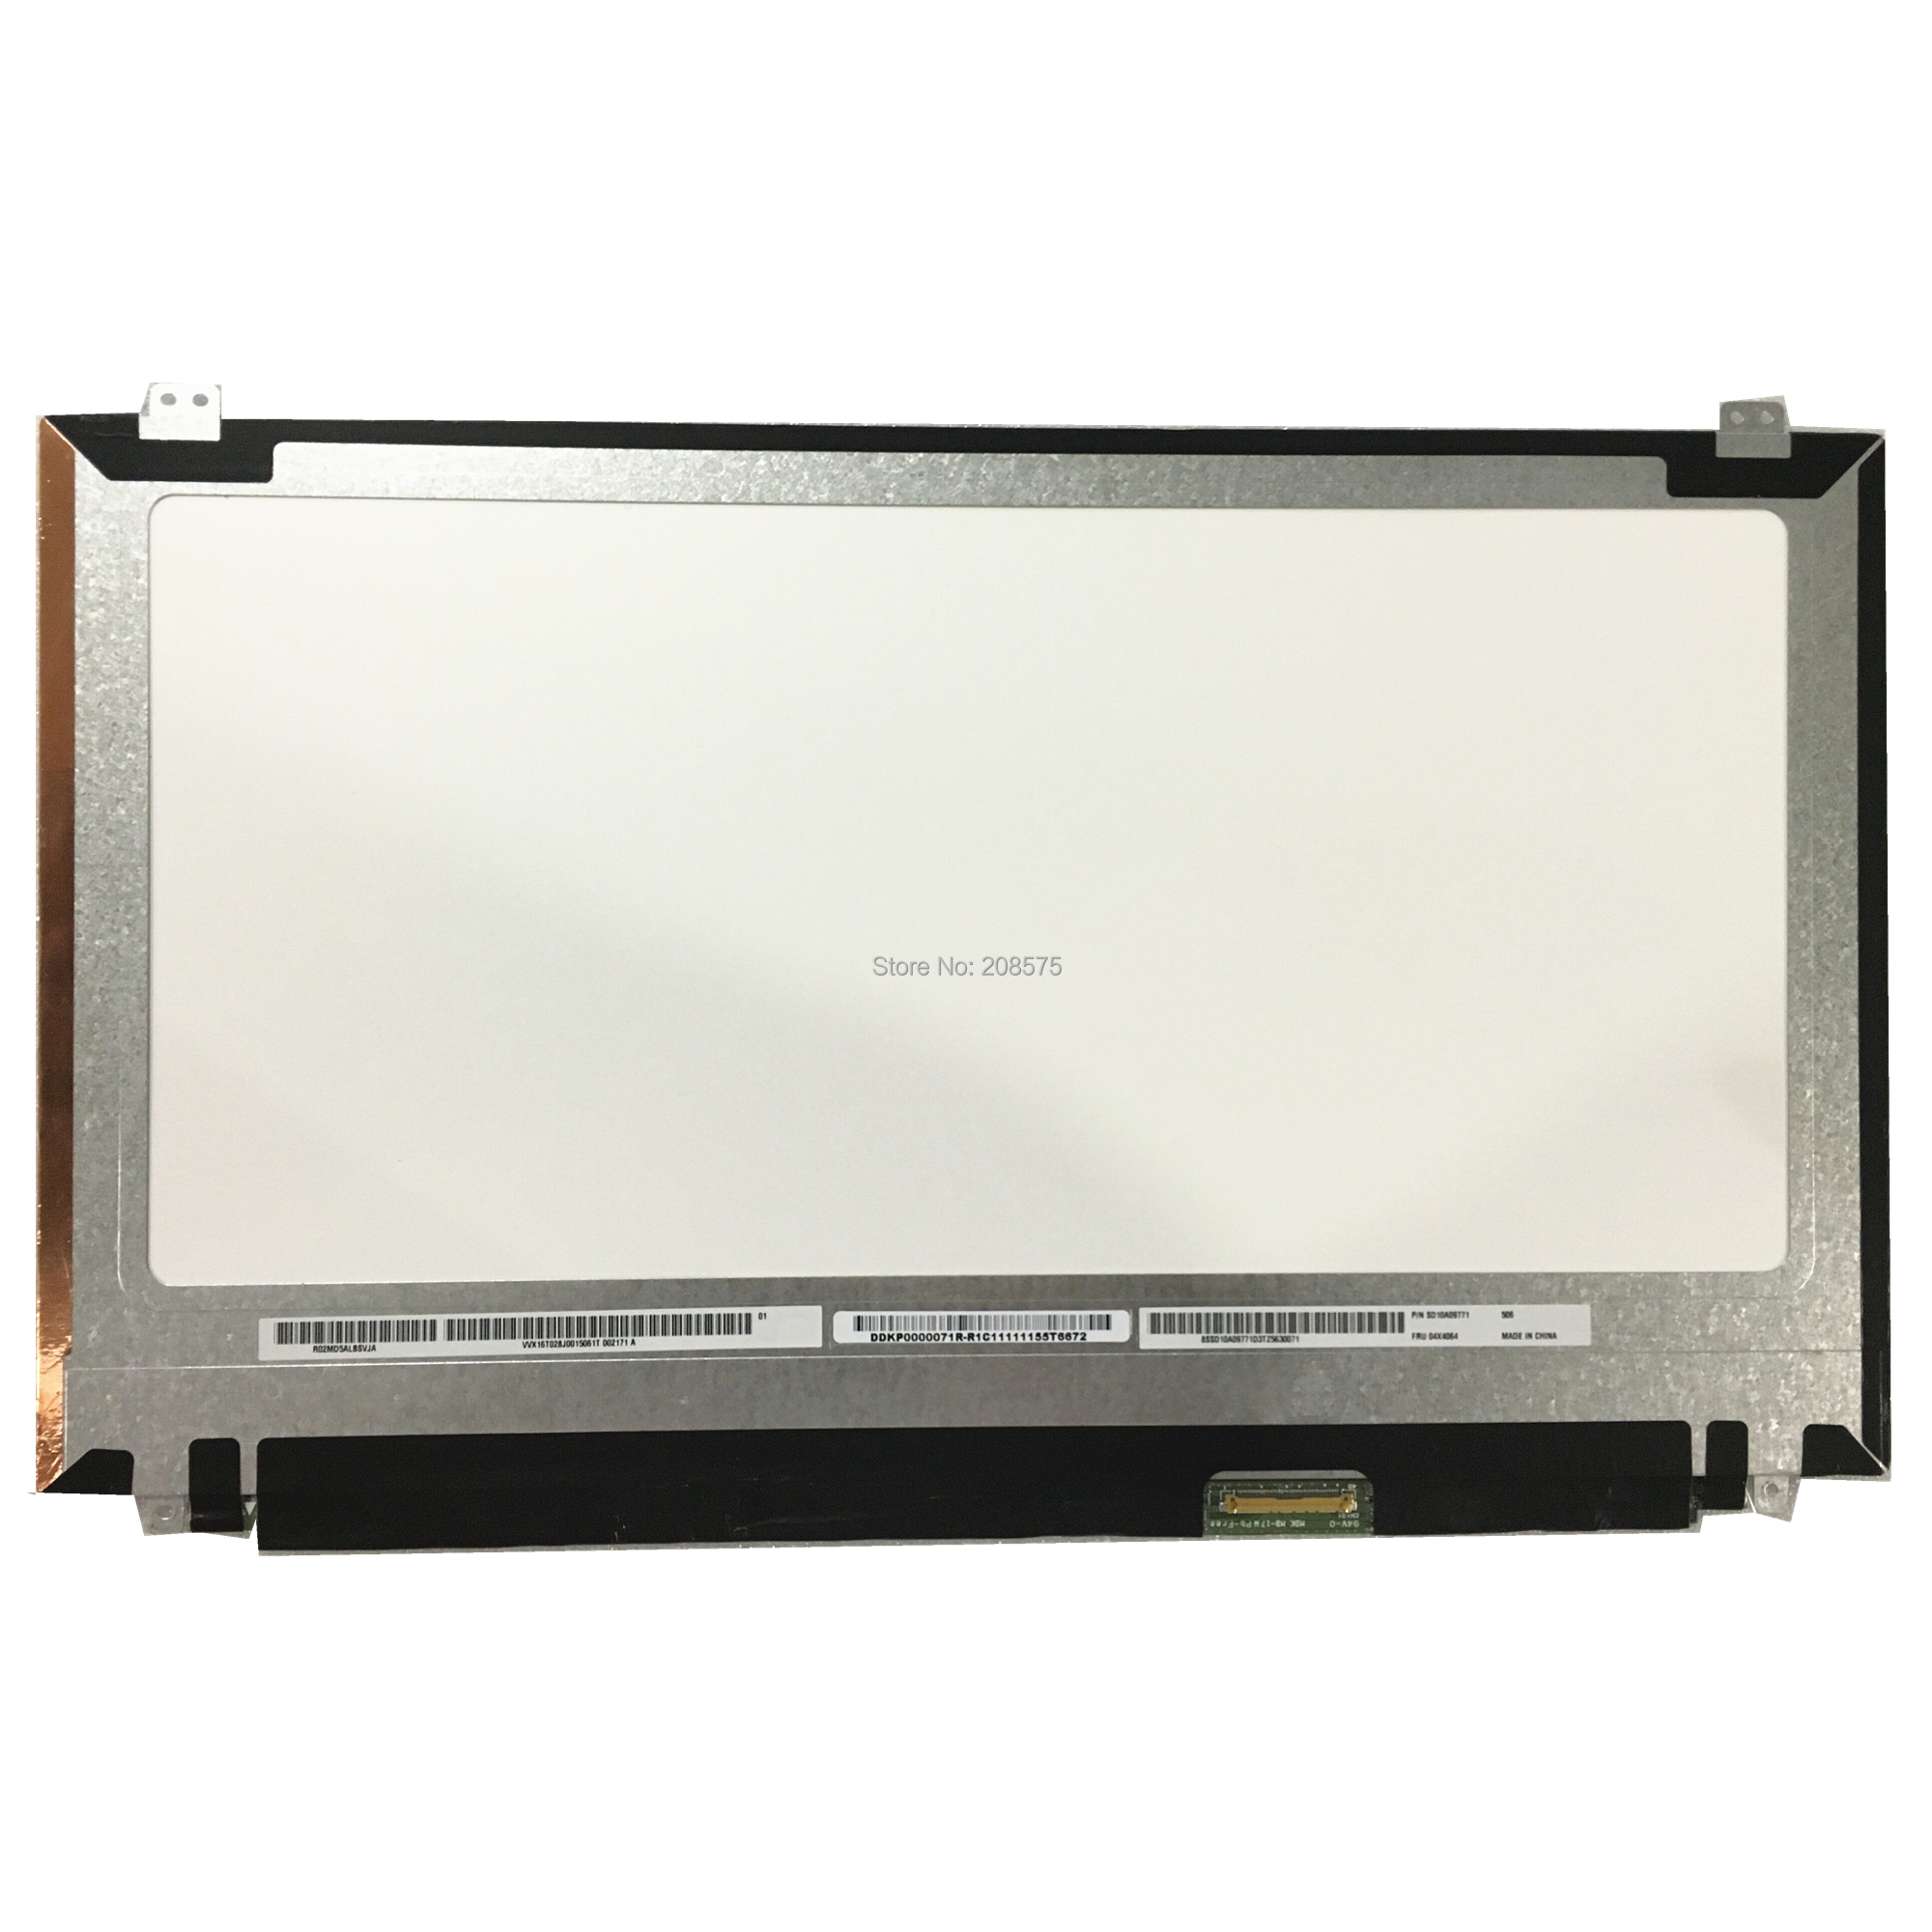 Free Shipping VVX16T028J00 2880*1620 for Lenovo T540p T550 T540 W540 W540P W550S 3K Laptop LCD screen panel with FRU 04X4064Free Shipping VVX16T028J00 2880*1620 for Lenovo T540p T550 T540 W540 W540P W550S 3K Laptop LCD screen panel with FRU 04X4064